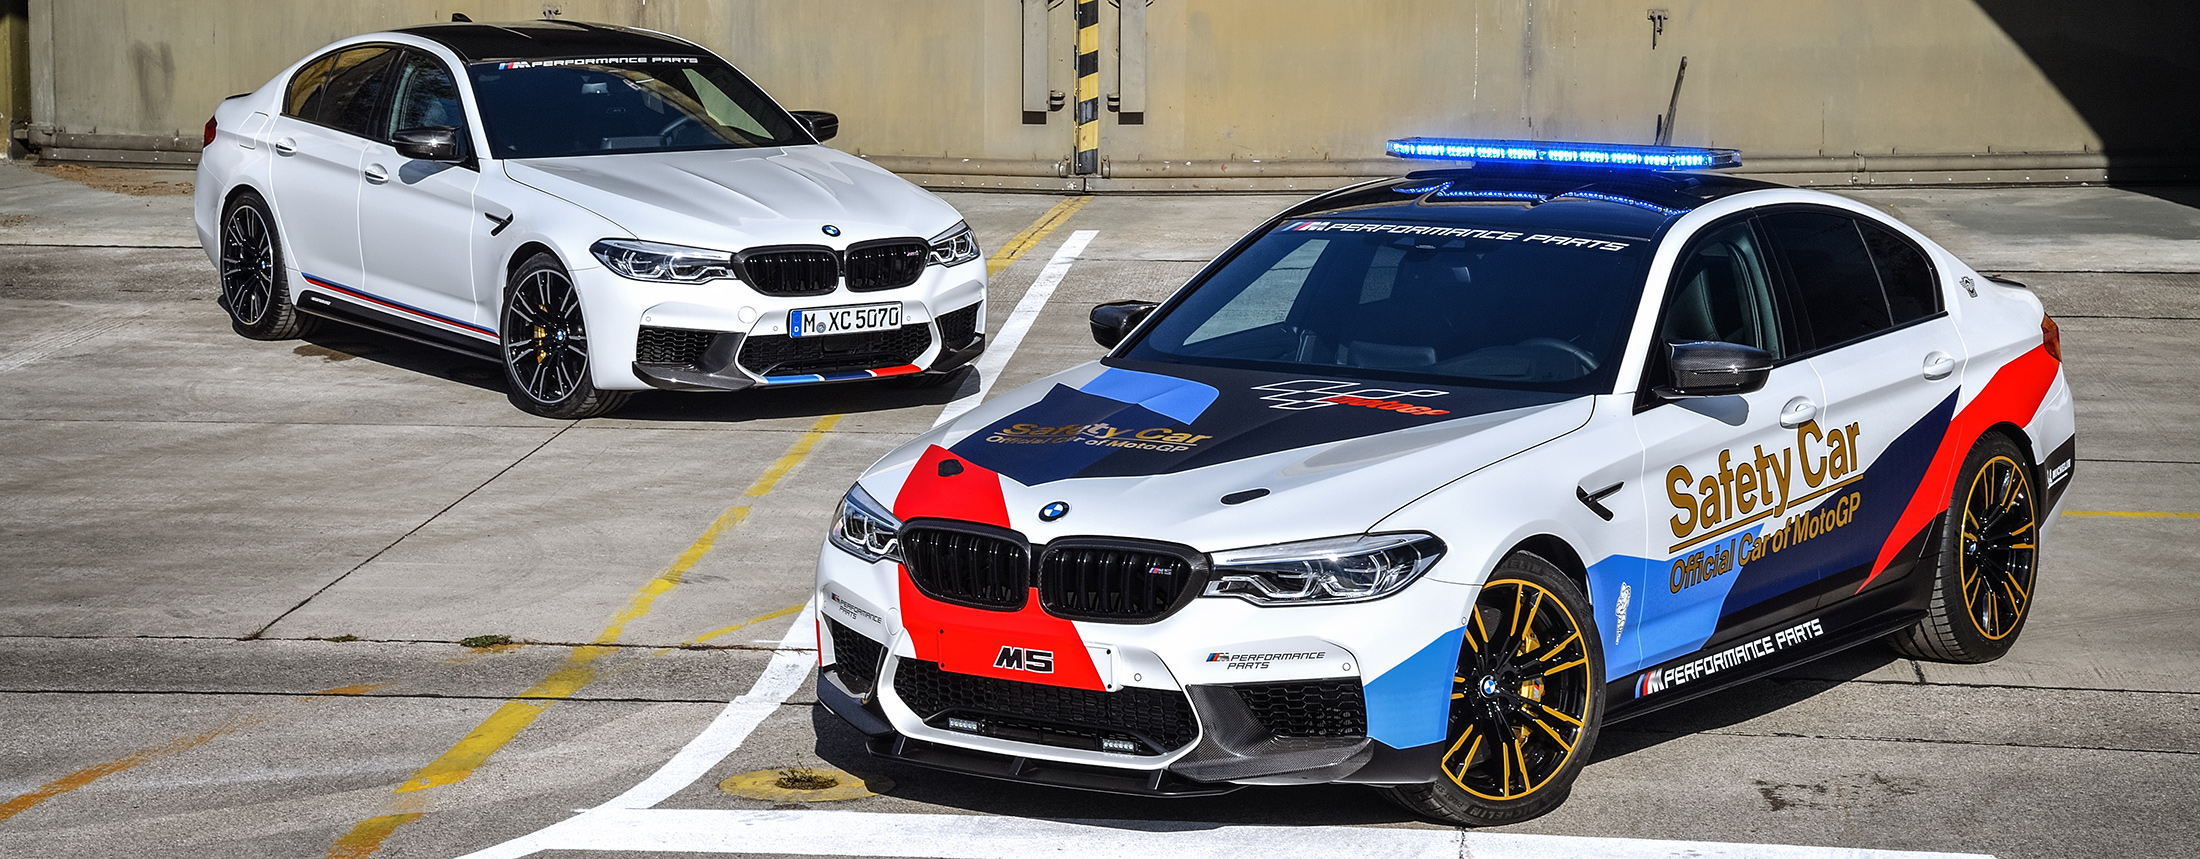 TrackWorthy - BMW M5 MotoGP Safety Car (26)